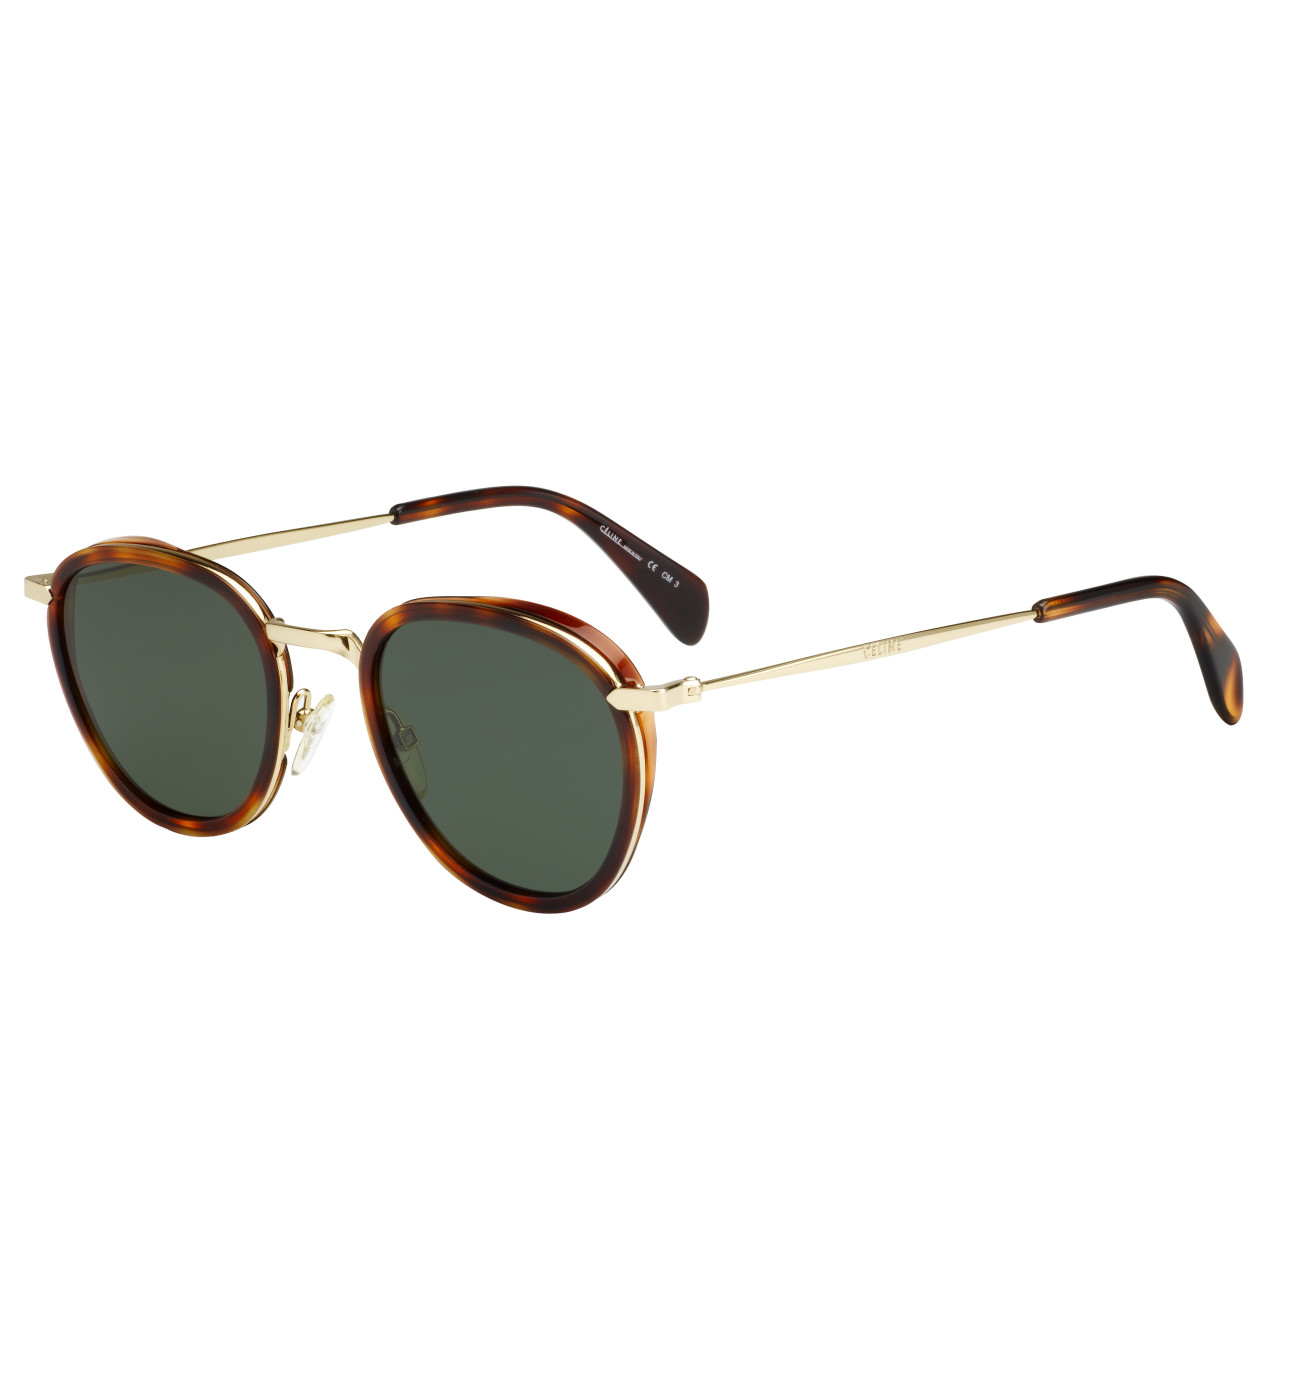 Designer Sunglasses Nz  women s sunglasses designer sunglasses online david jones